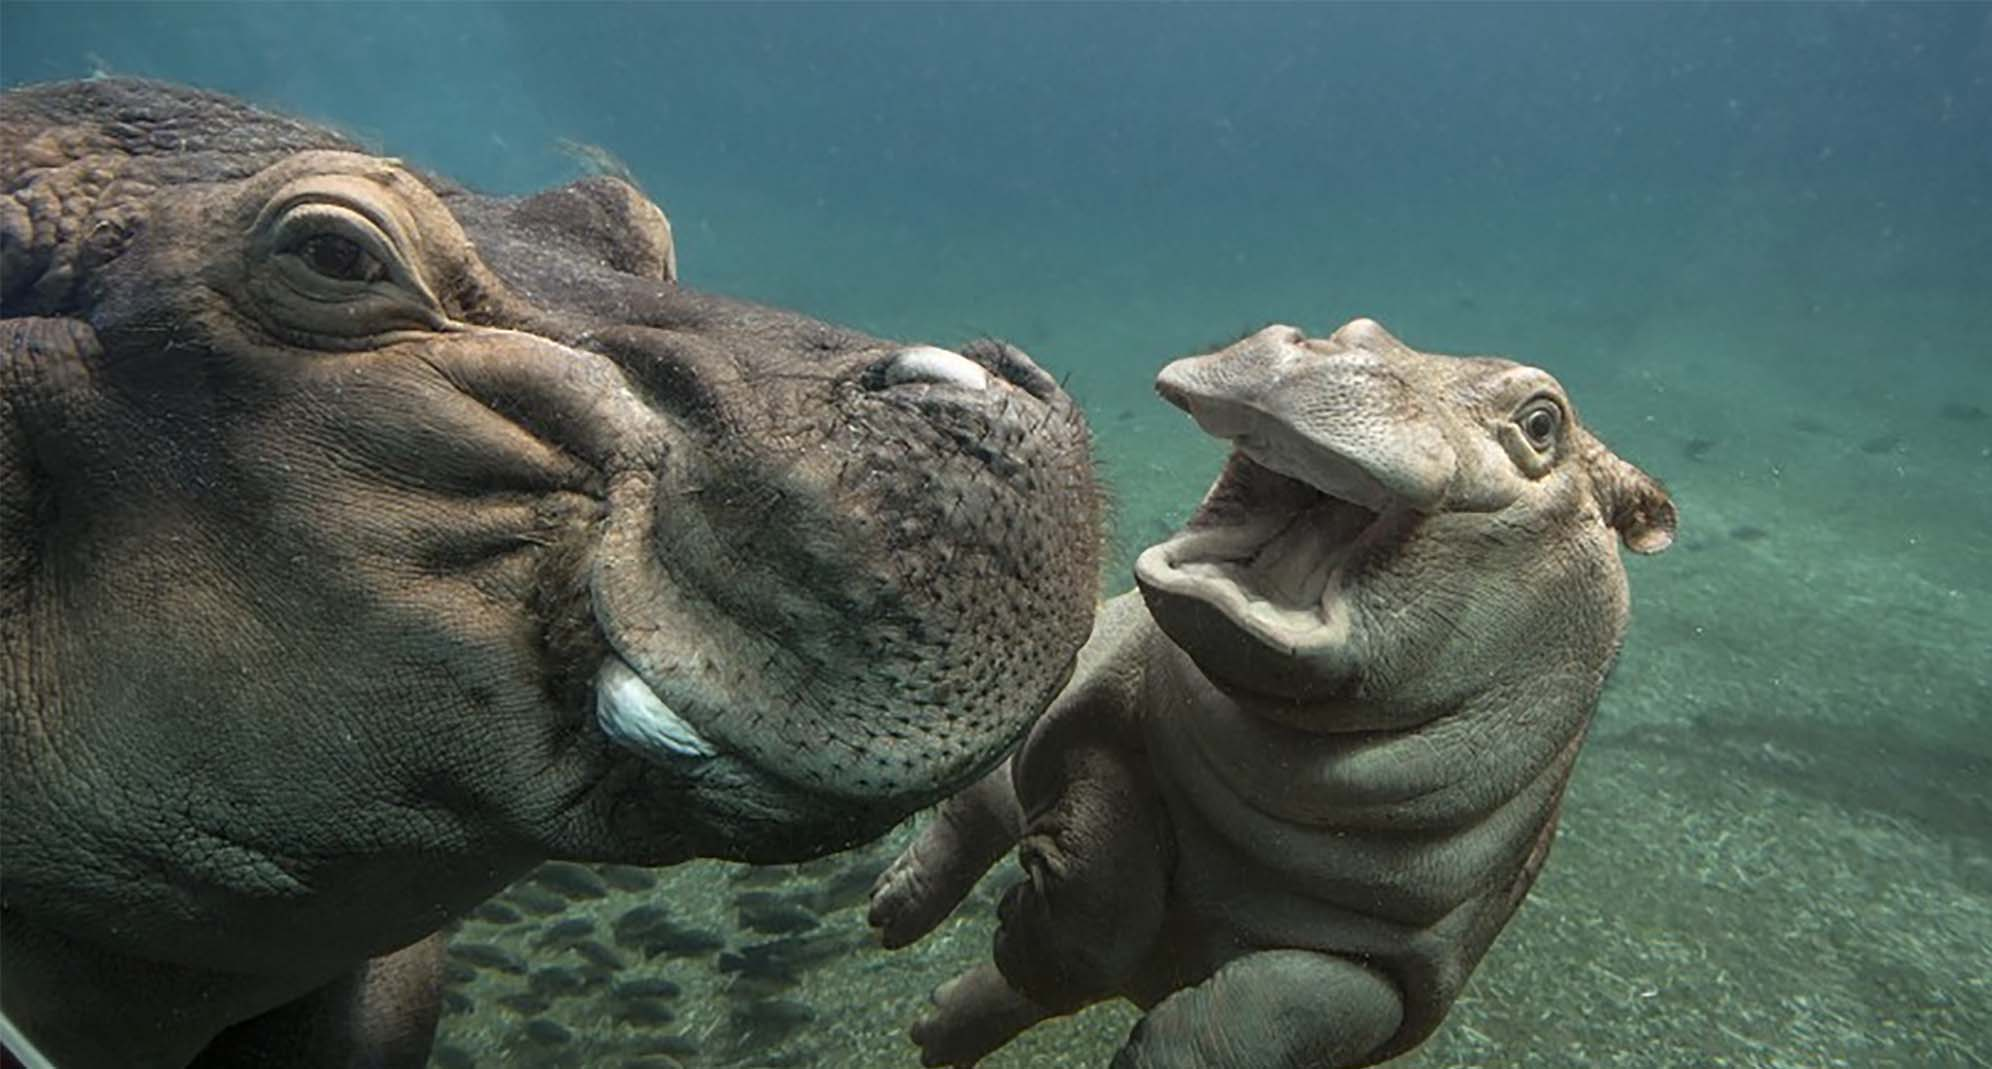 Mother and child hippo swimming in a pool watching each other.